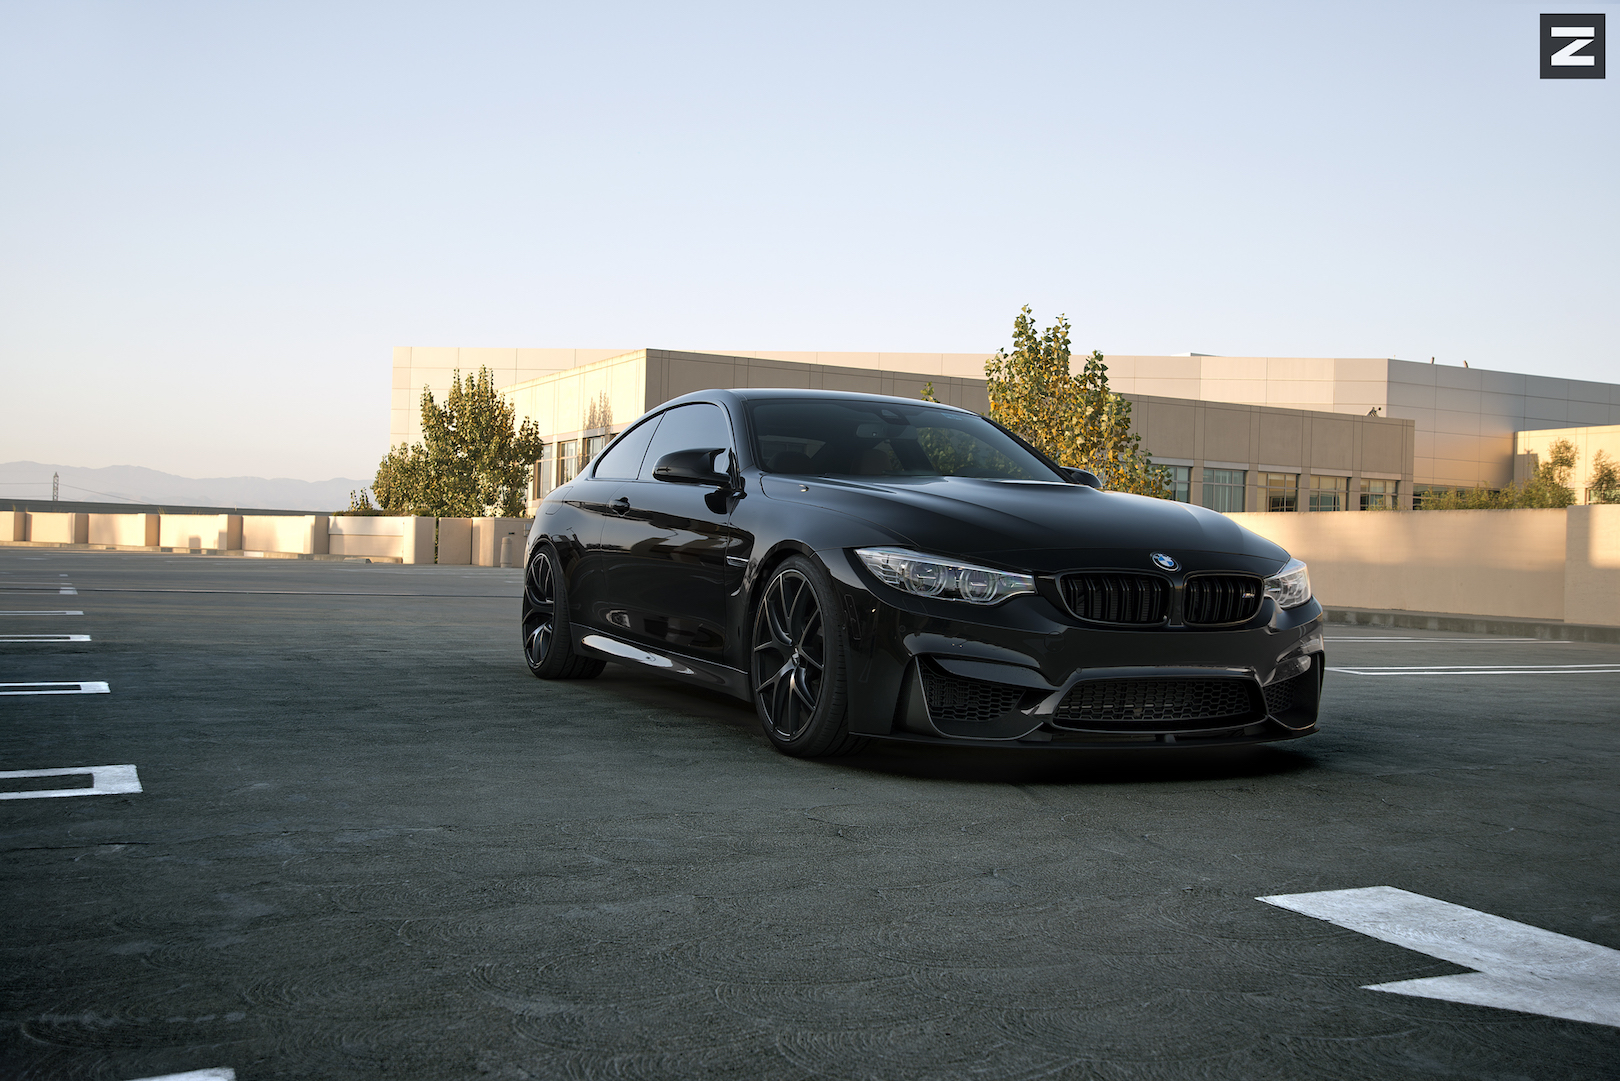 BMW F82 M4 Black Black ZS05